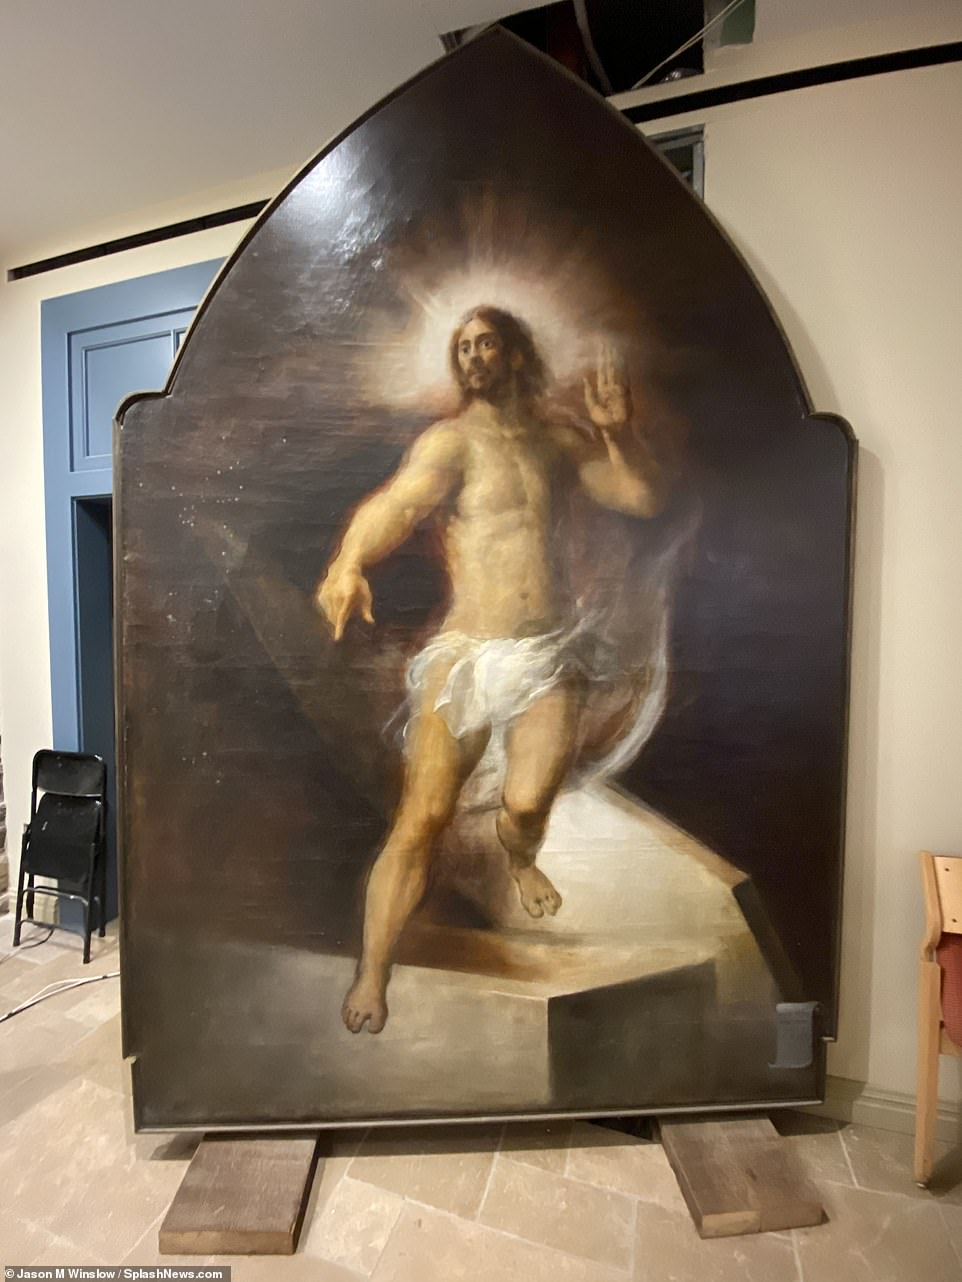 Pictured: a portrait of Jesus Christ was photographed insideThe Basilica of St. Patrick's Old Cathedral, where a family vault was put on sale